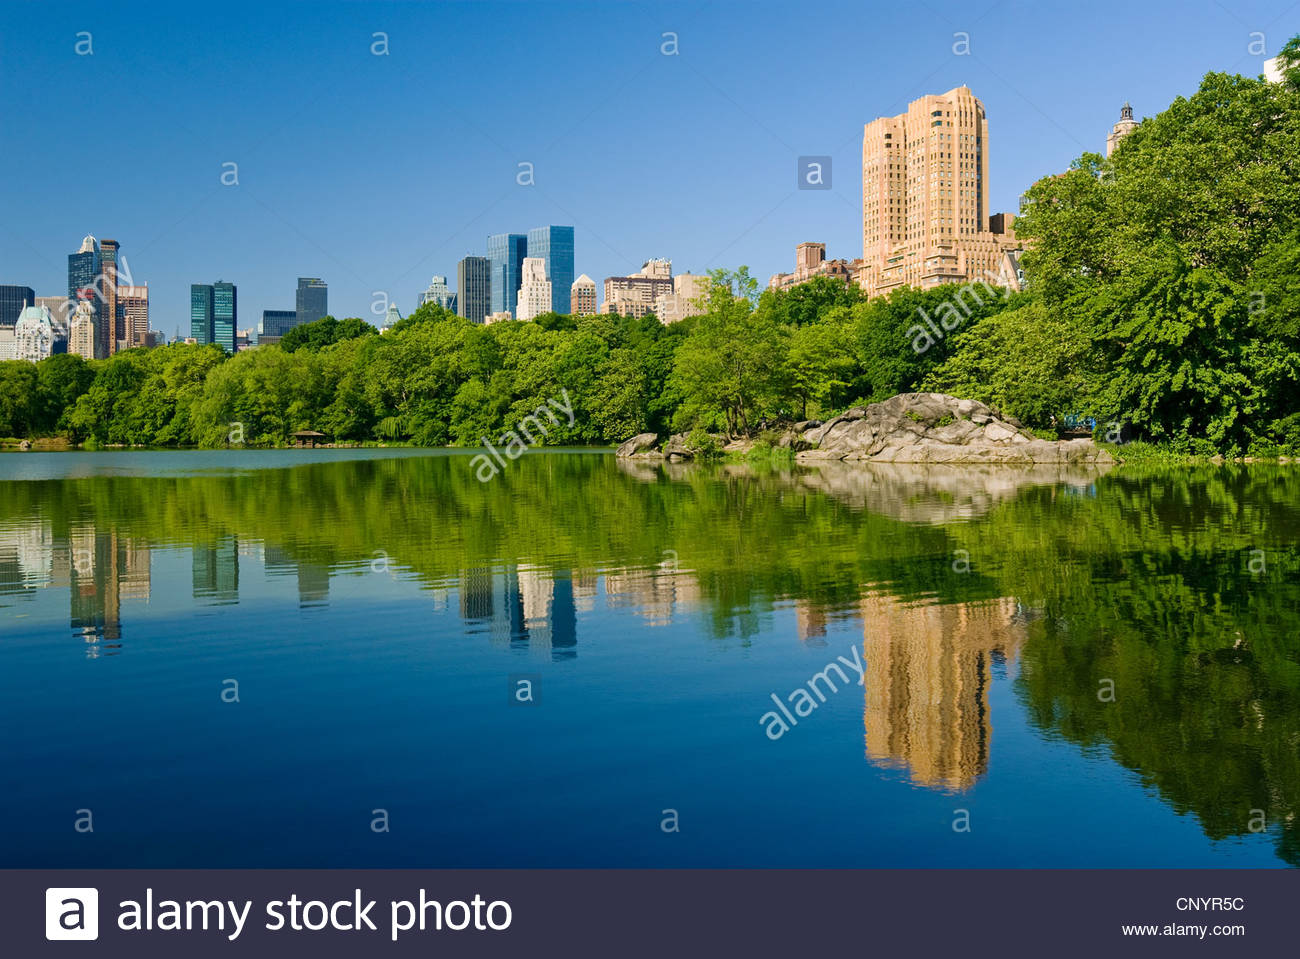 Central Park Lake Midtown Manhattan Skyline Central Park West Stockbild